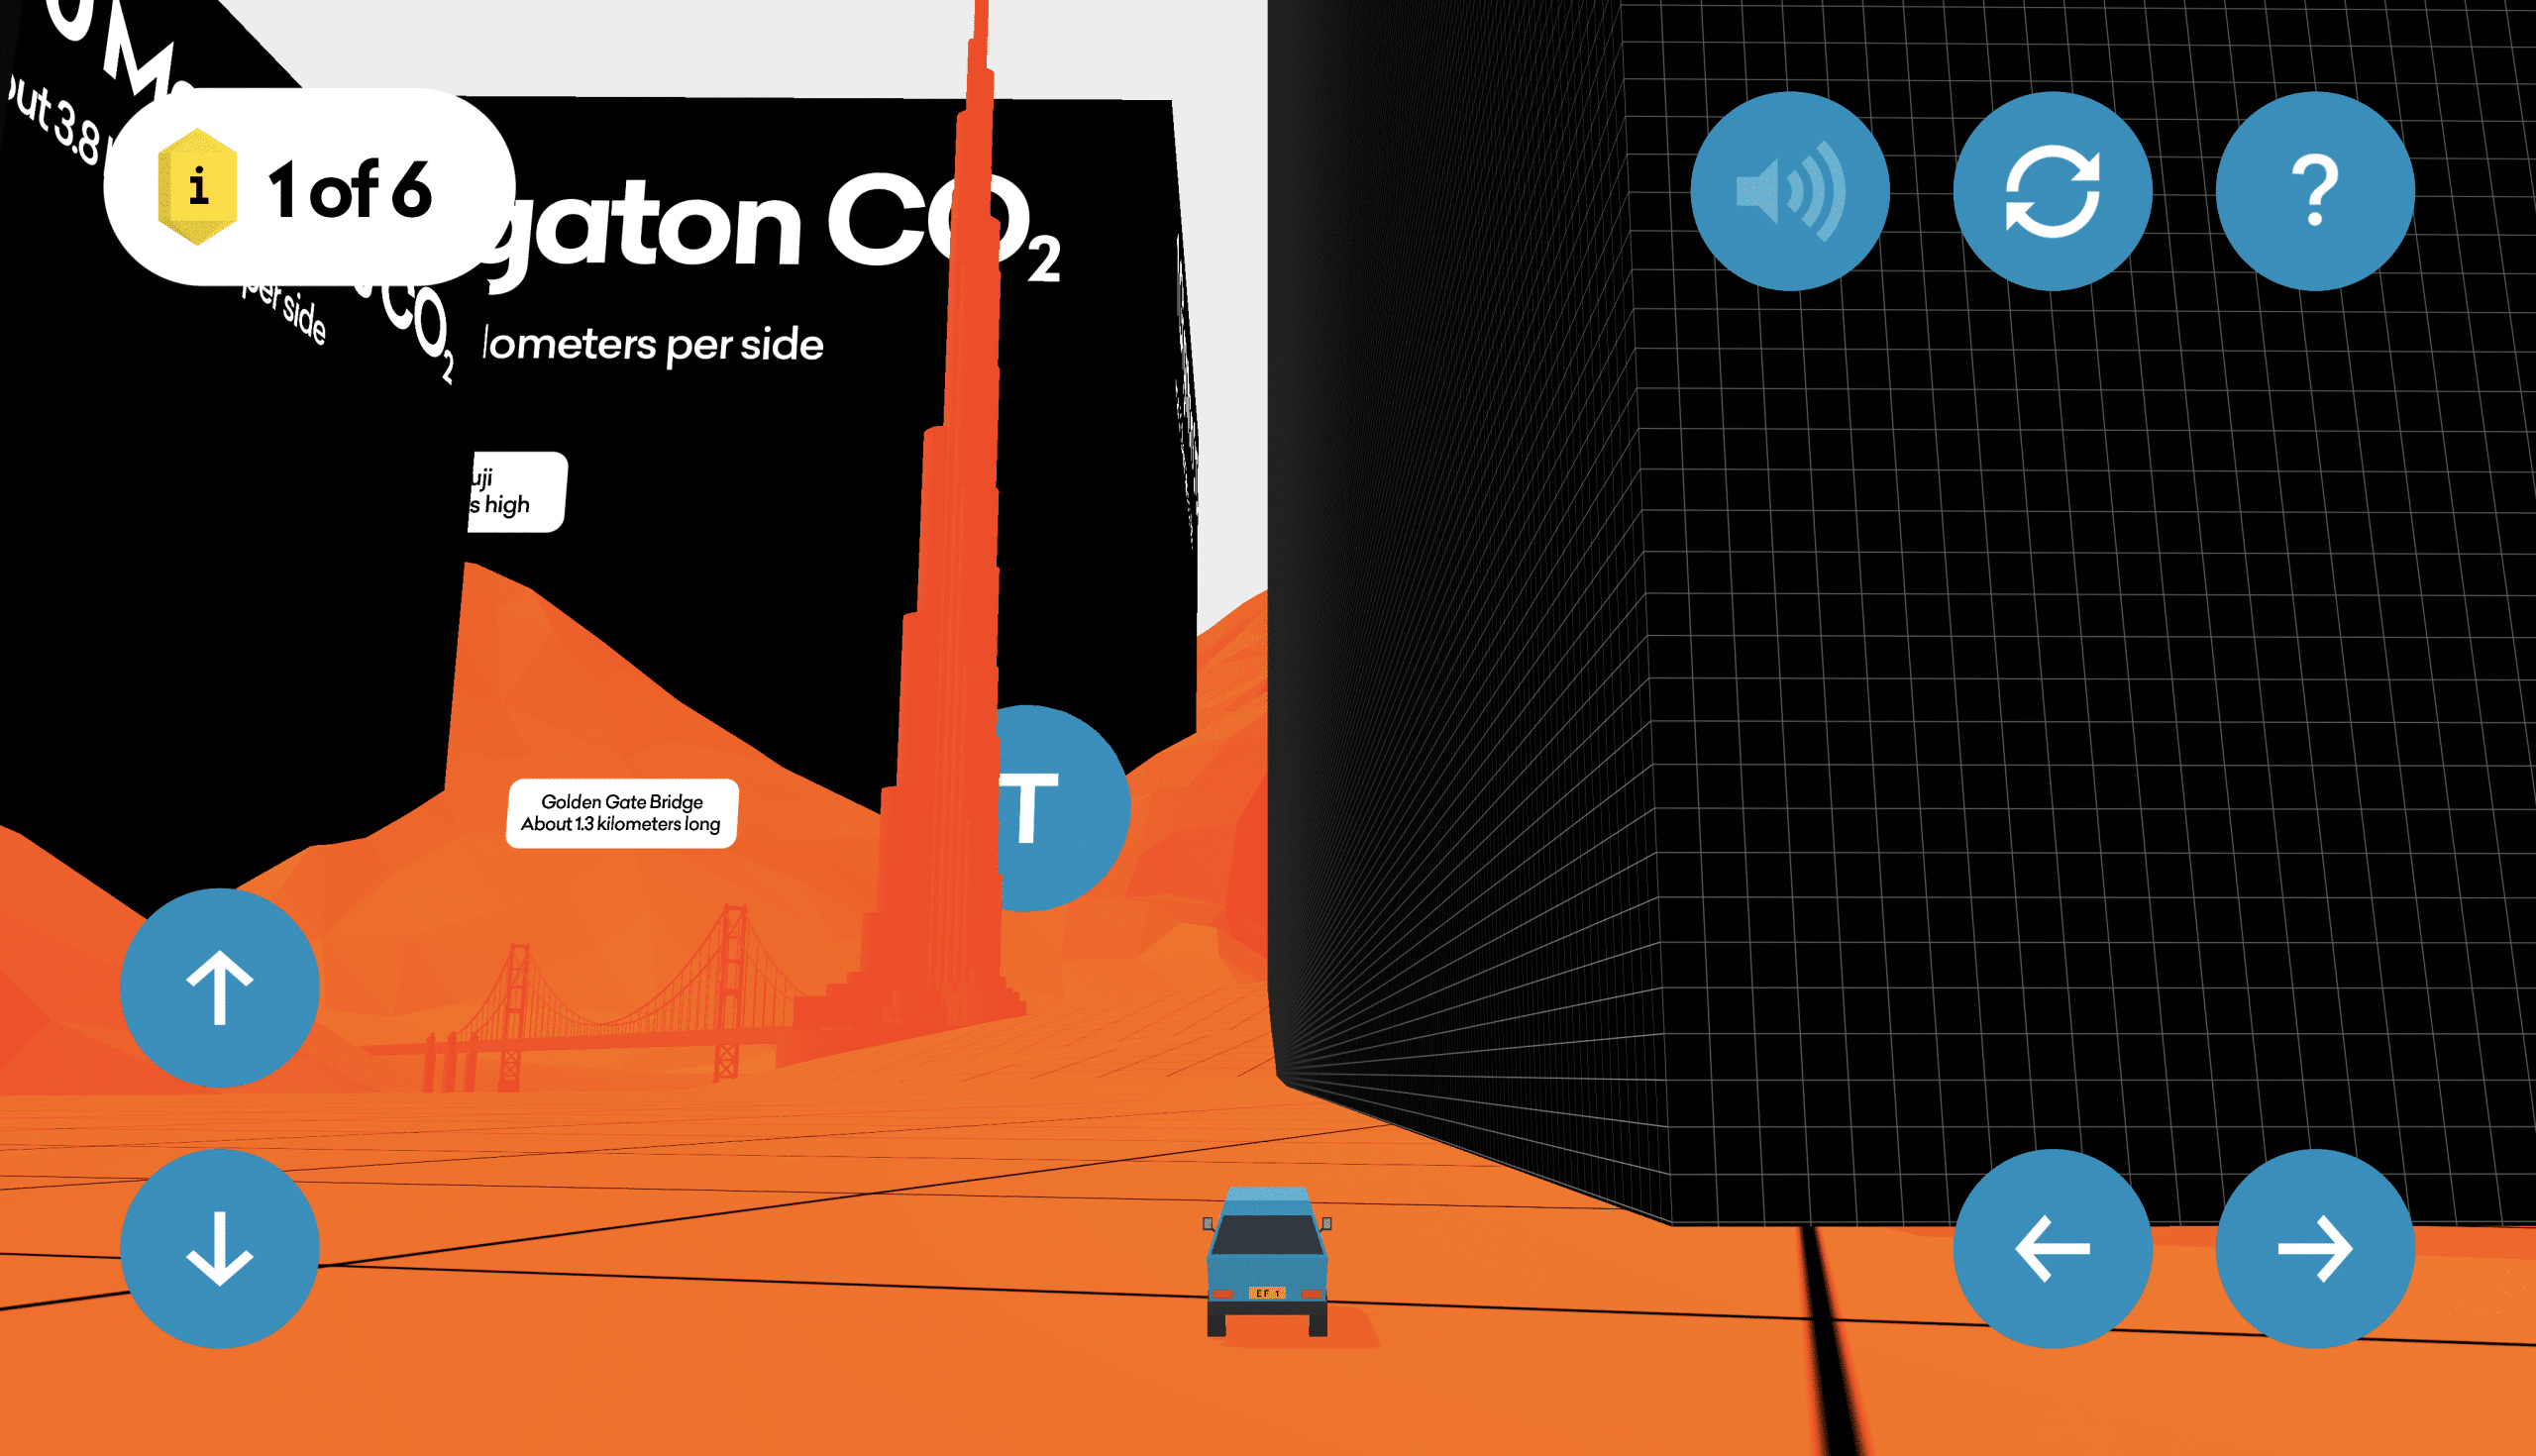 View of 1 Megaton of CO2